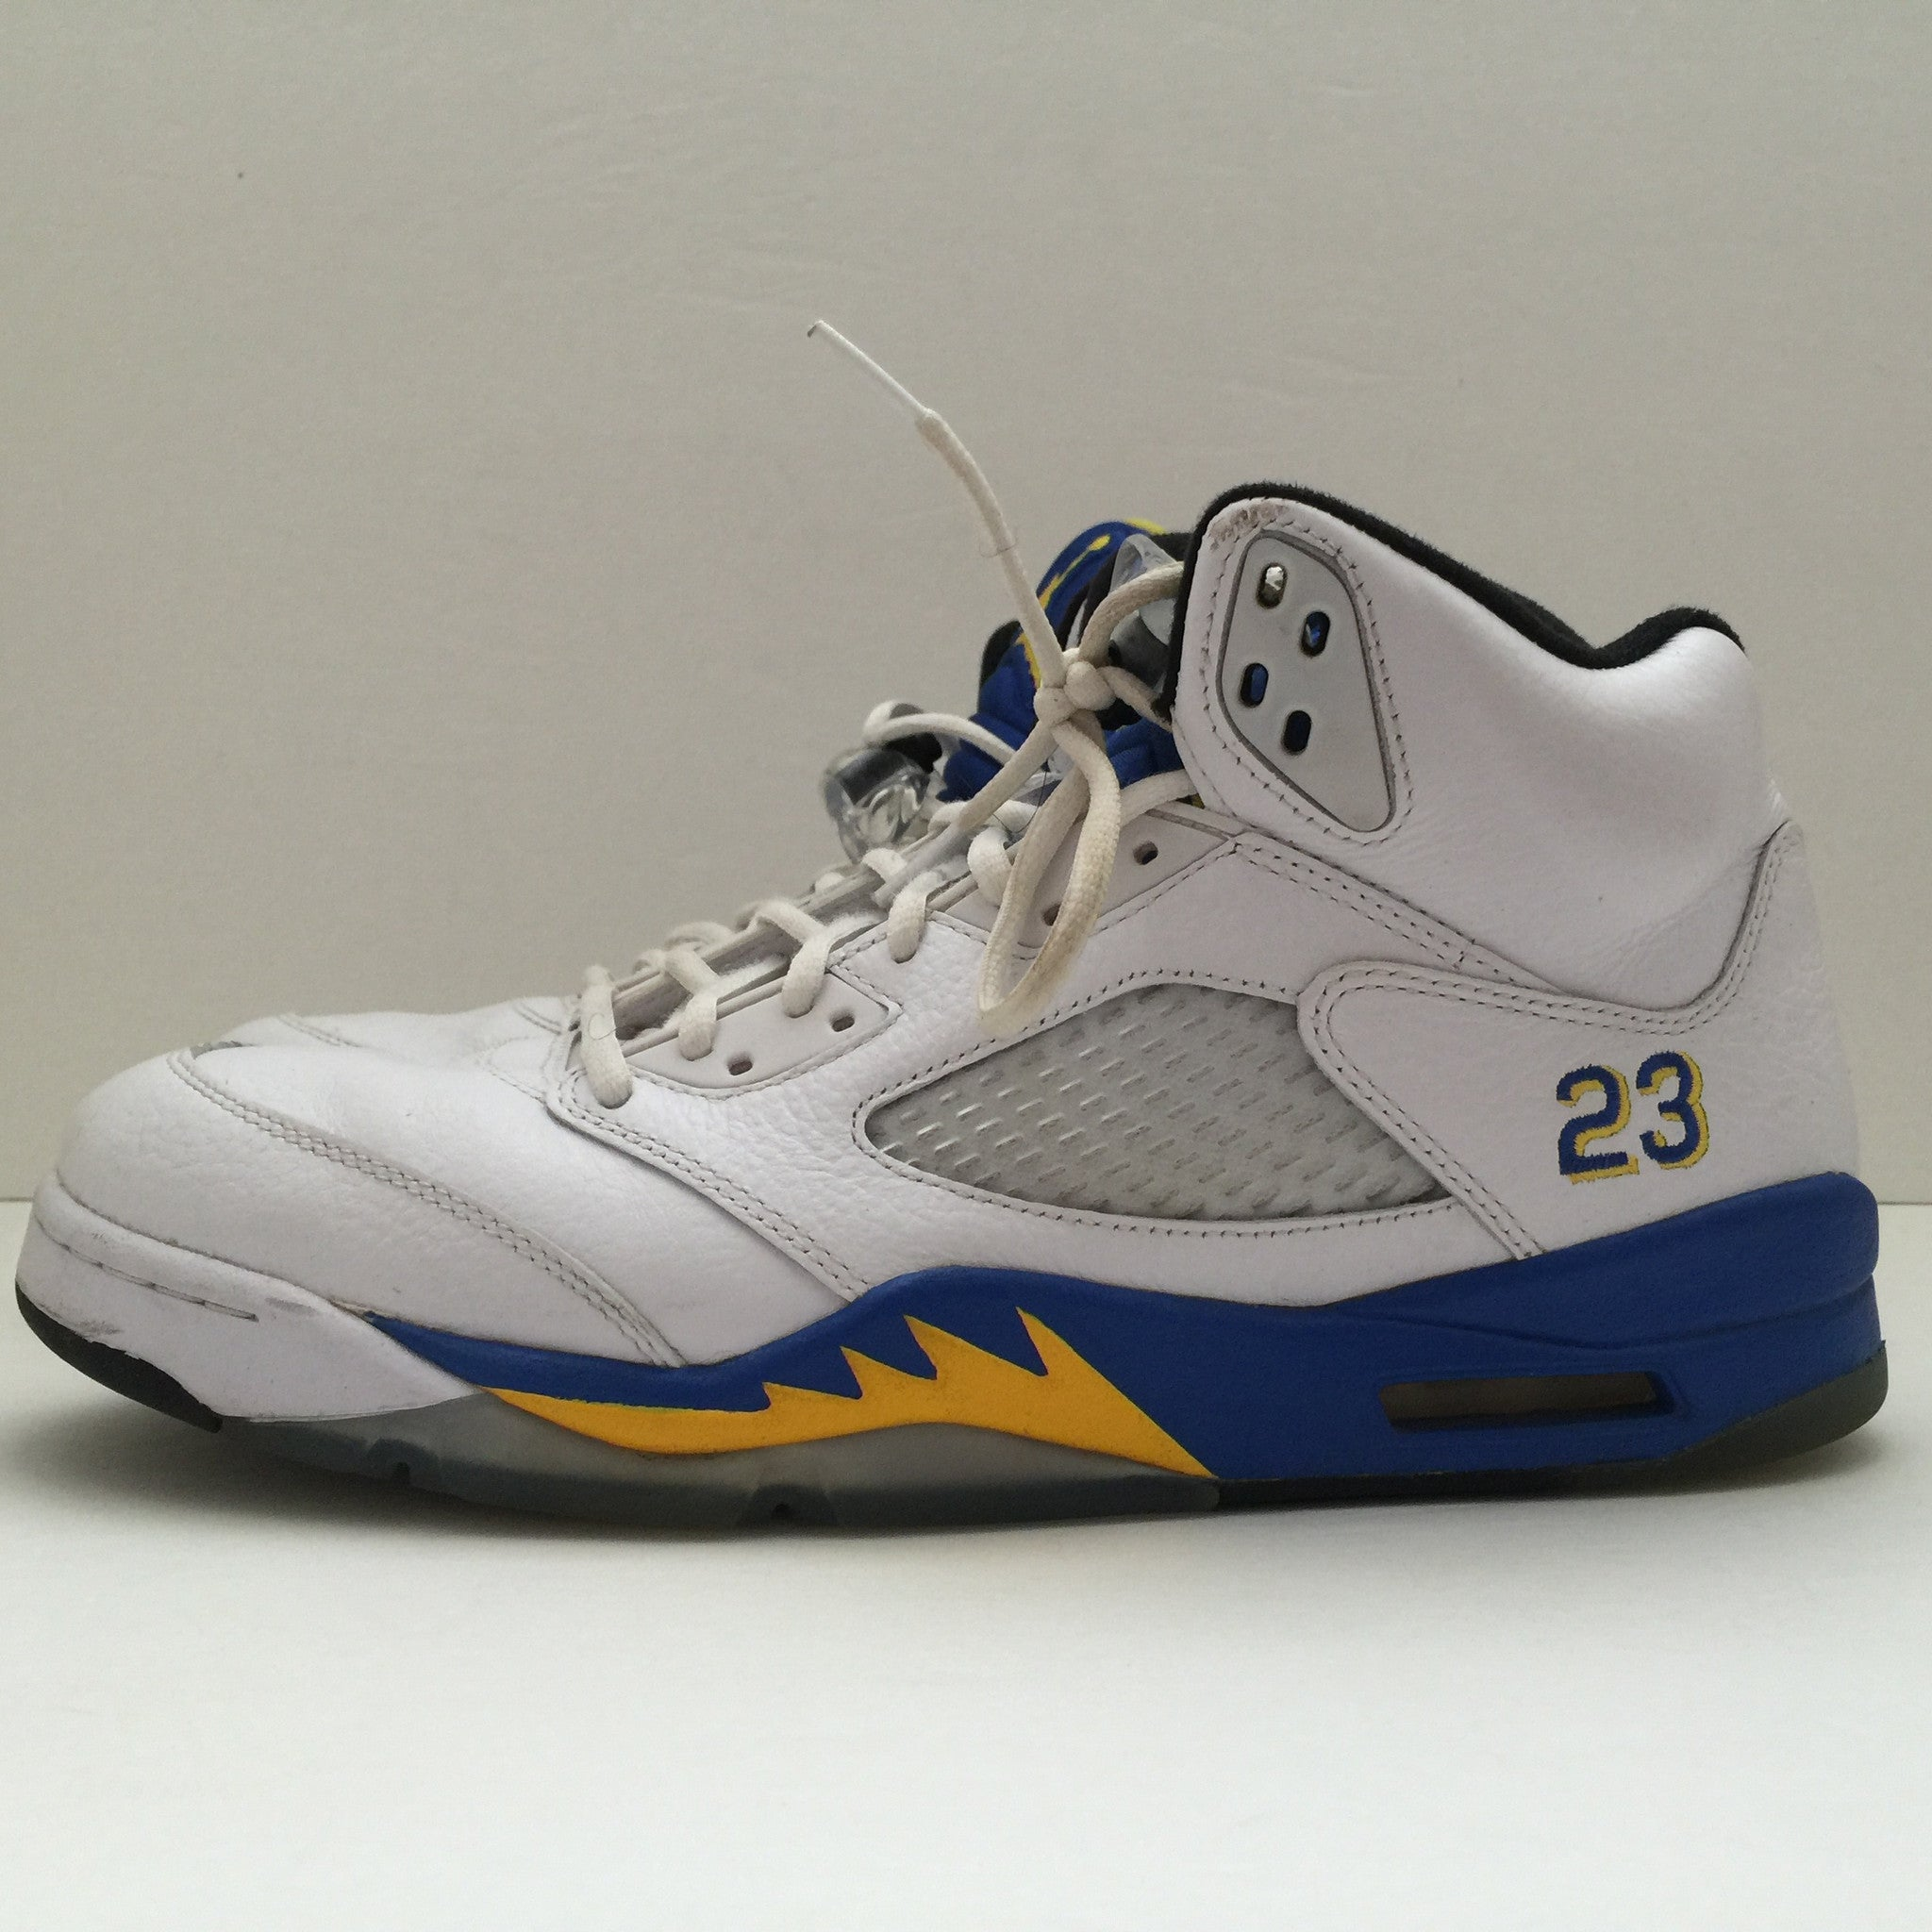 Nike Air Jordan 5 V Retro Laney Size 11.5 - DOPEFOOT  - 5